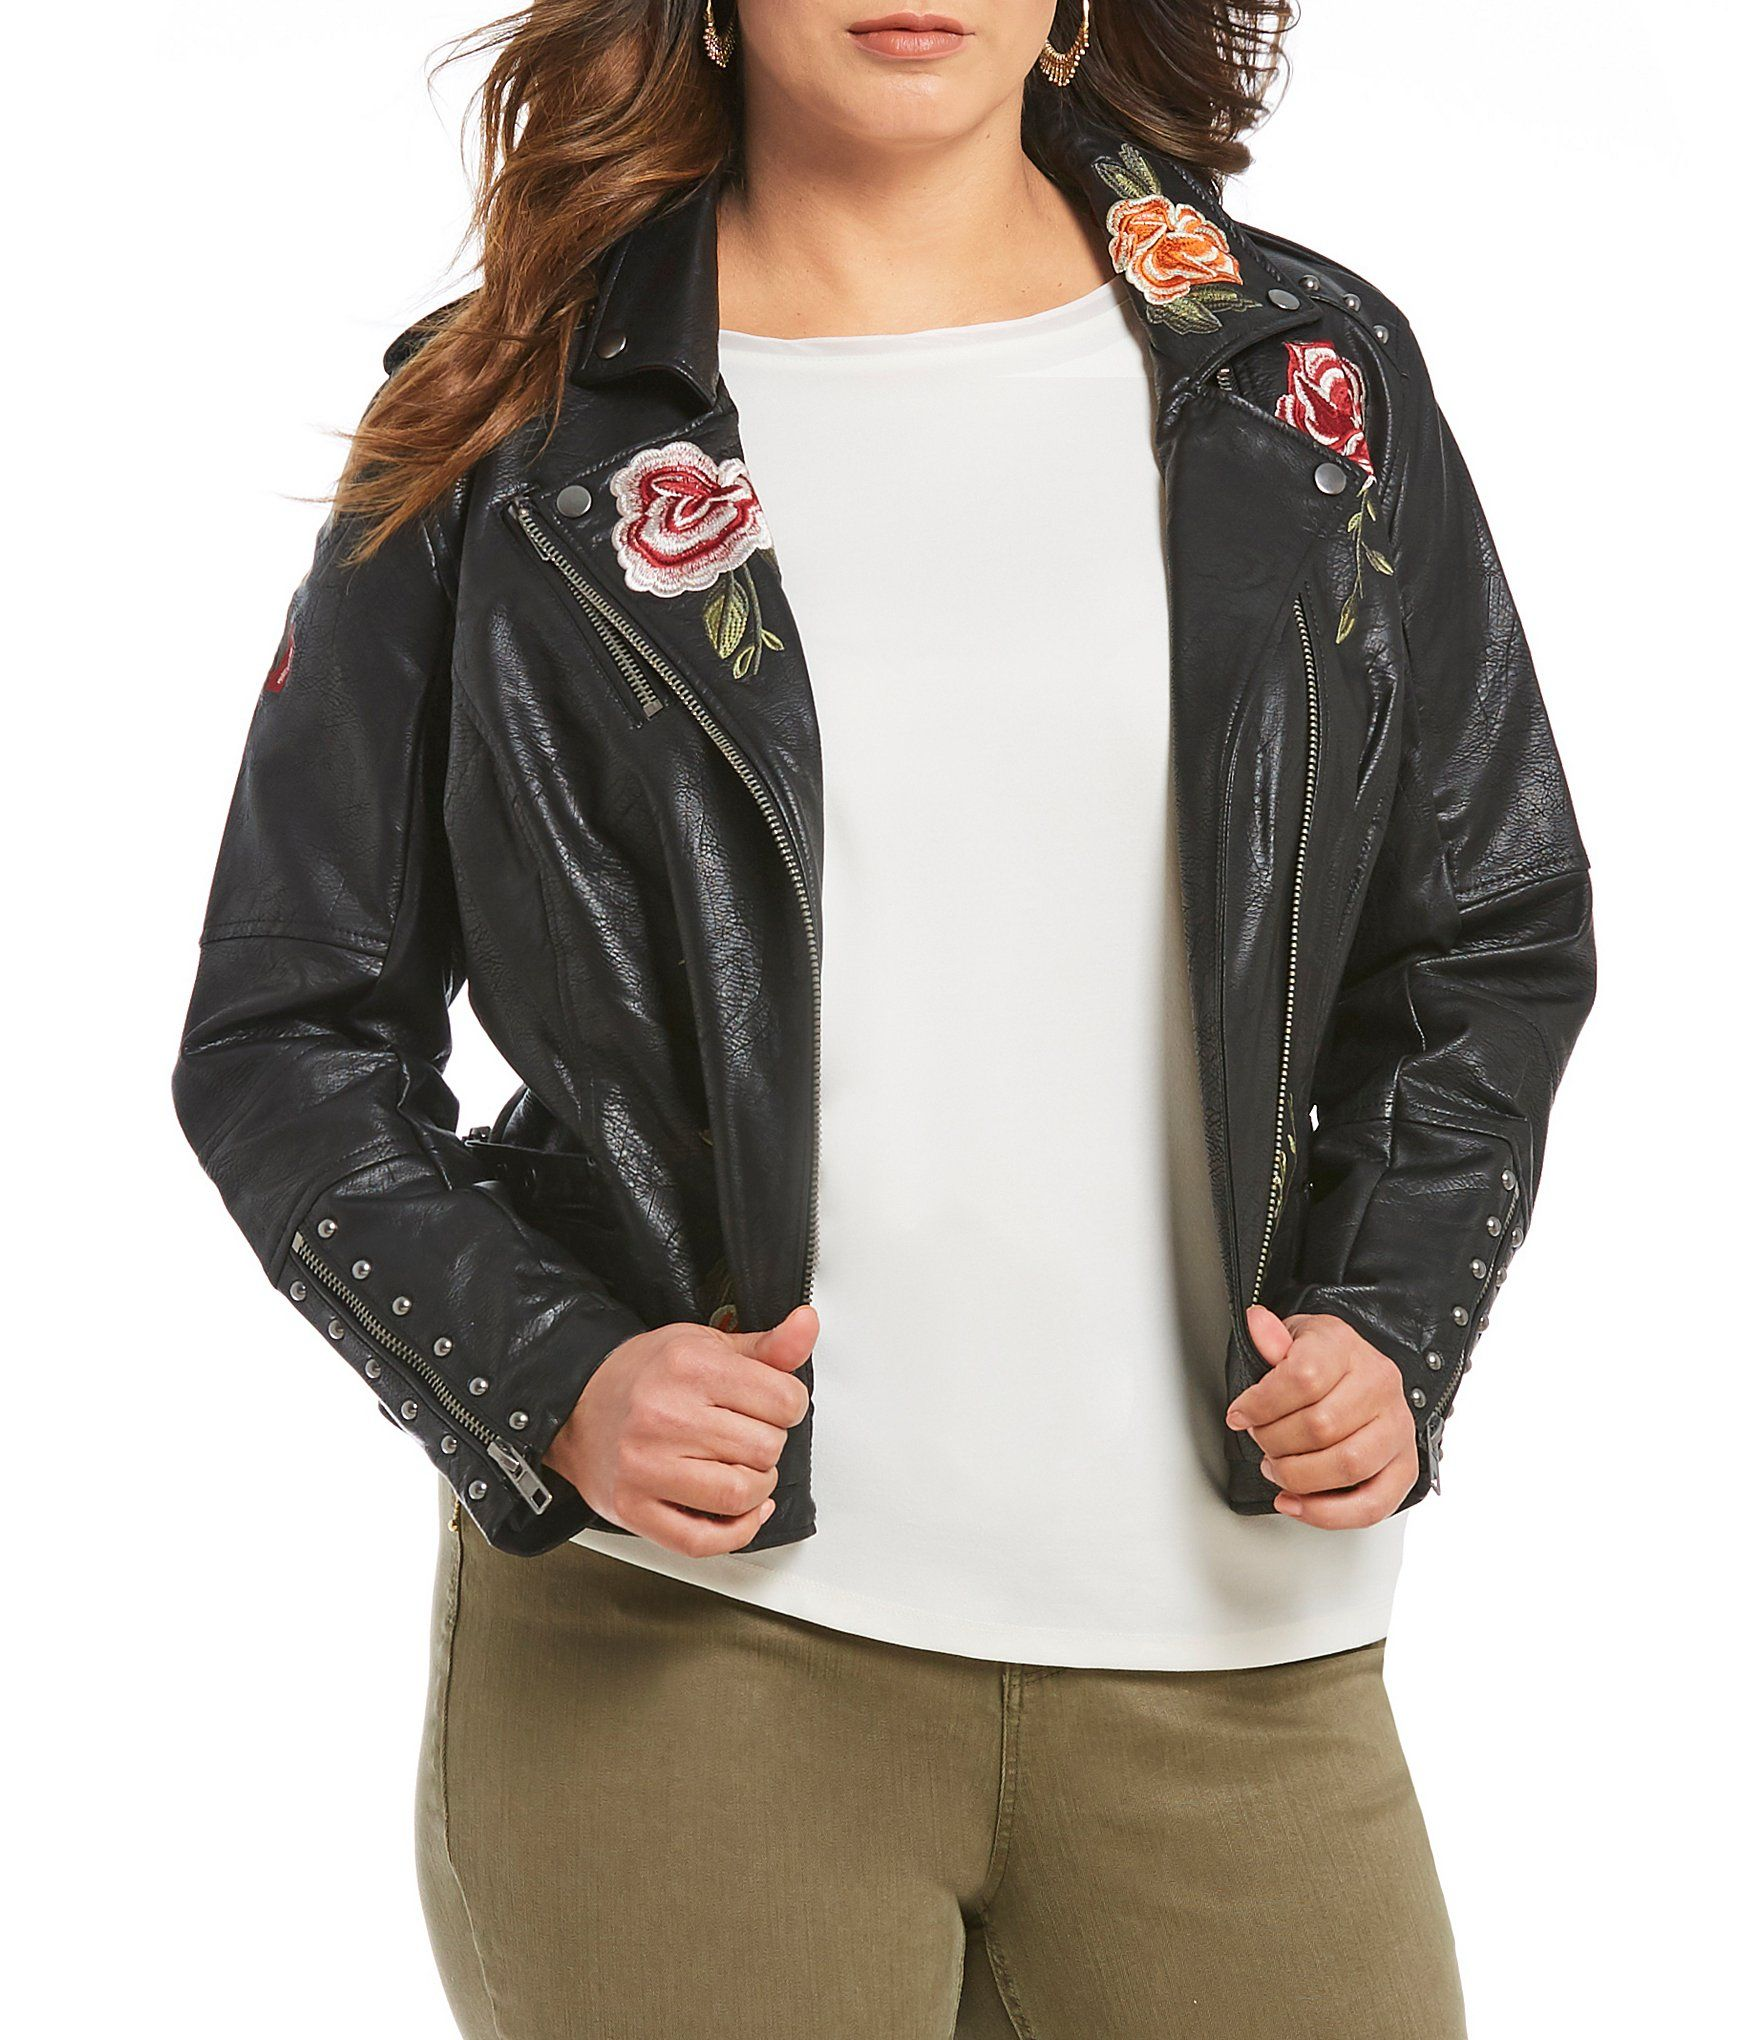 e20482c521 Shop for Gibson   Latimer Plus Leather Embroidered Jacket at Dillards.com.  Visit Dillards.com to find clothing